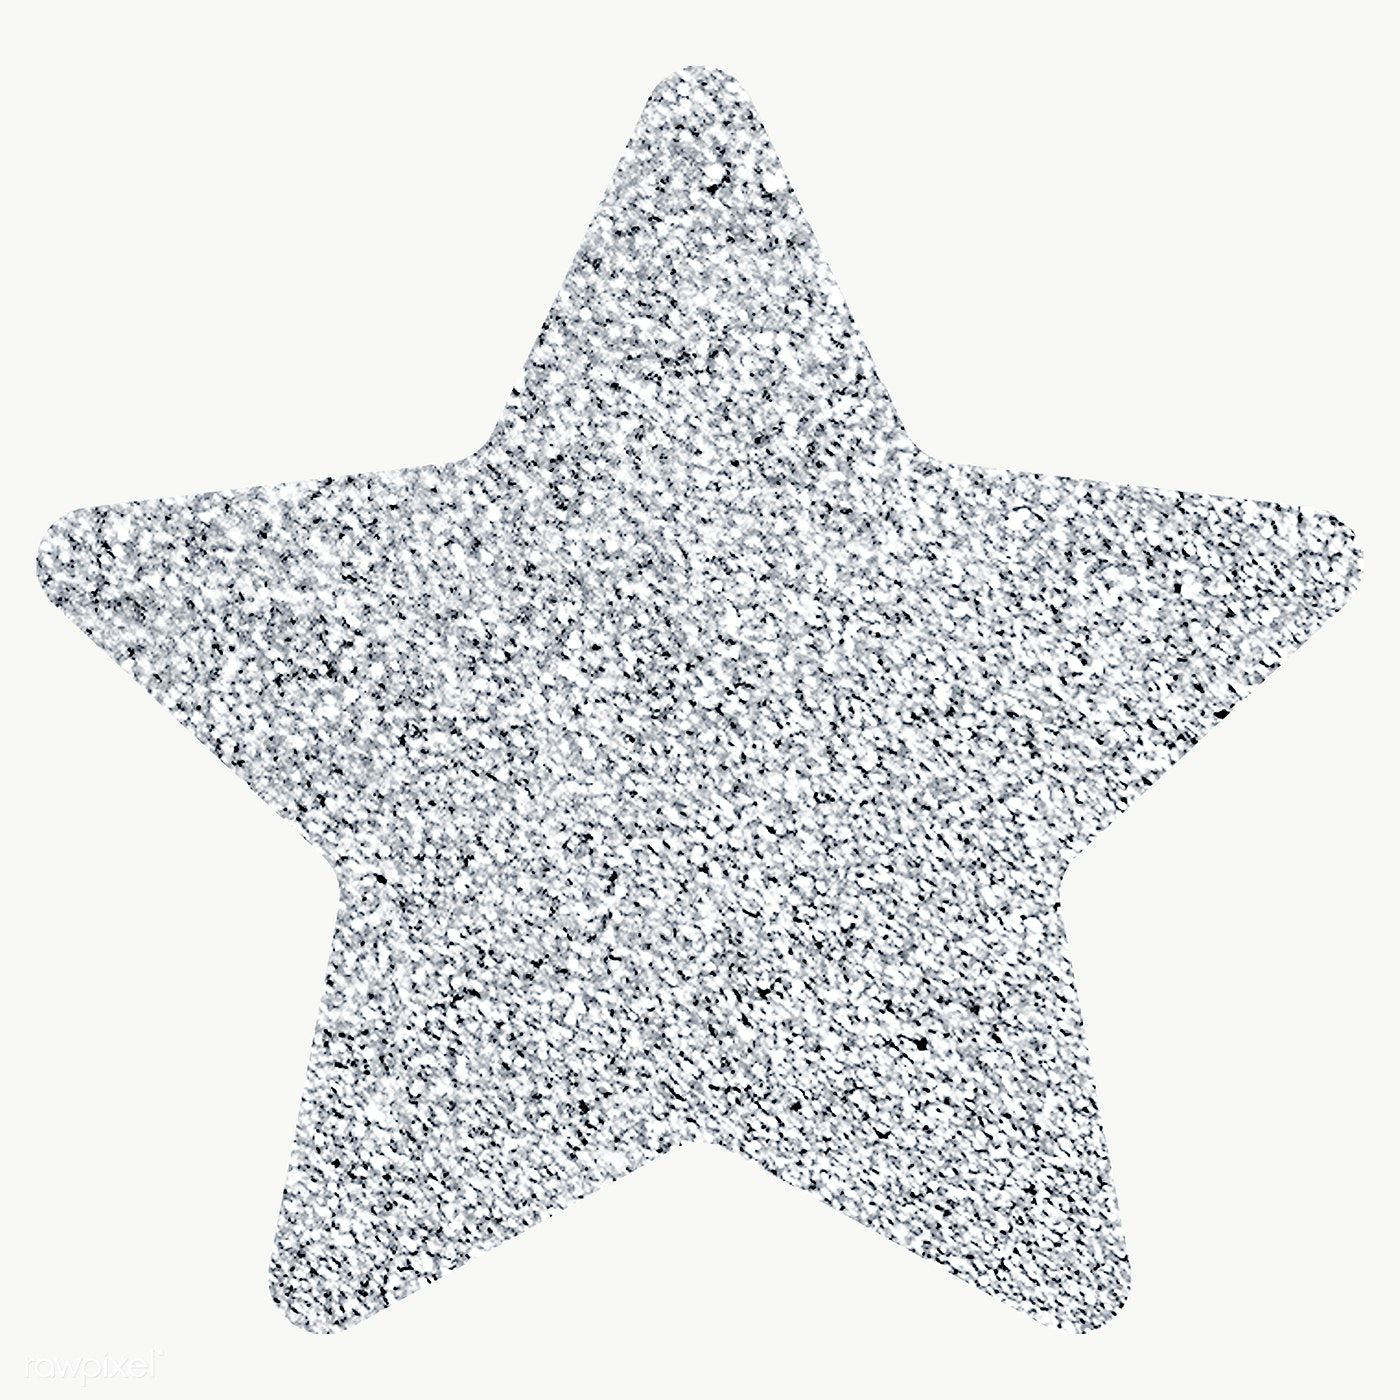 Glitter Star Sticker Transparent Png Free Image By Rawpixel Com Ningzk V Star Stickers Glitter Stars Transparent Stickers